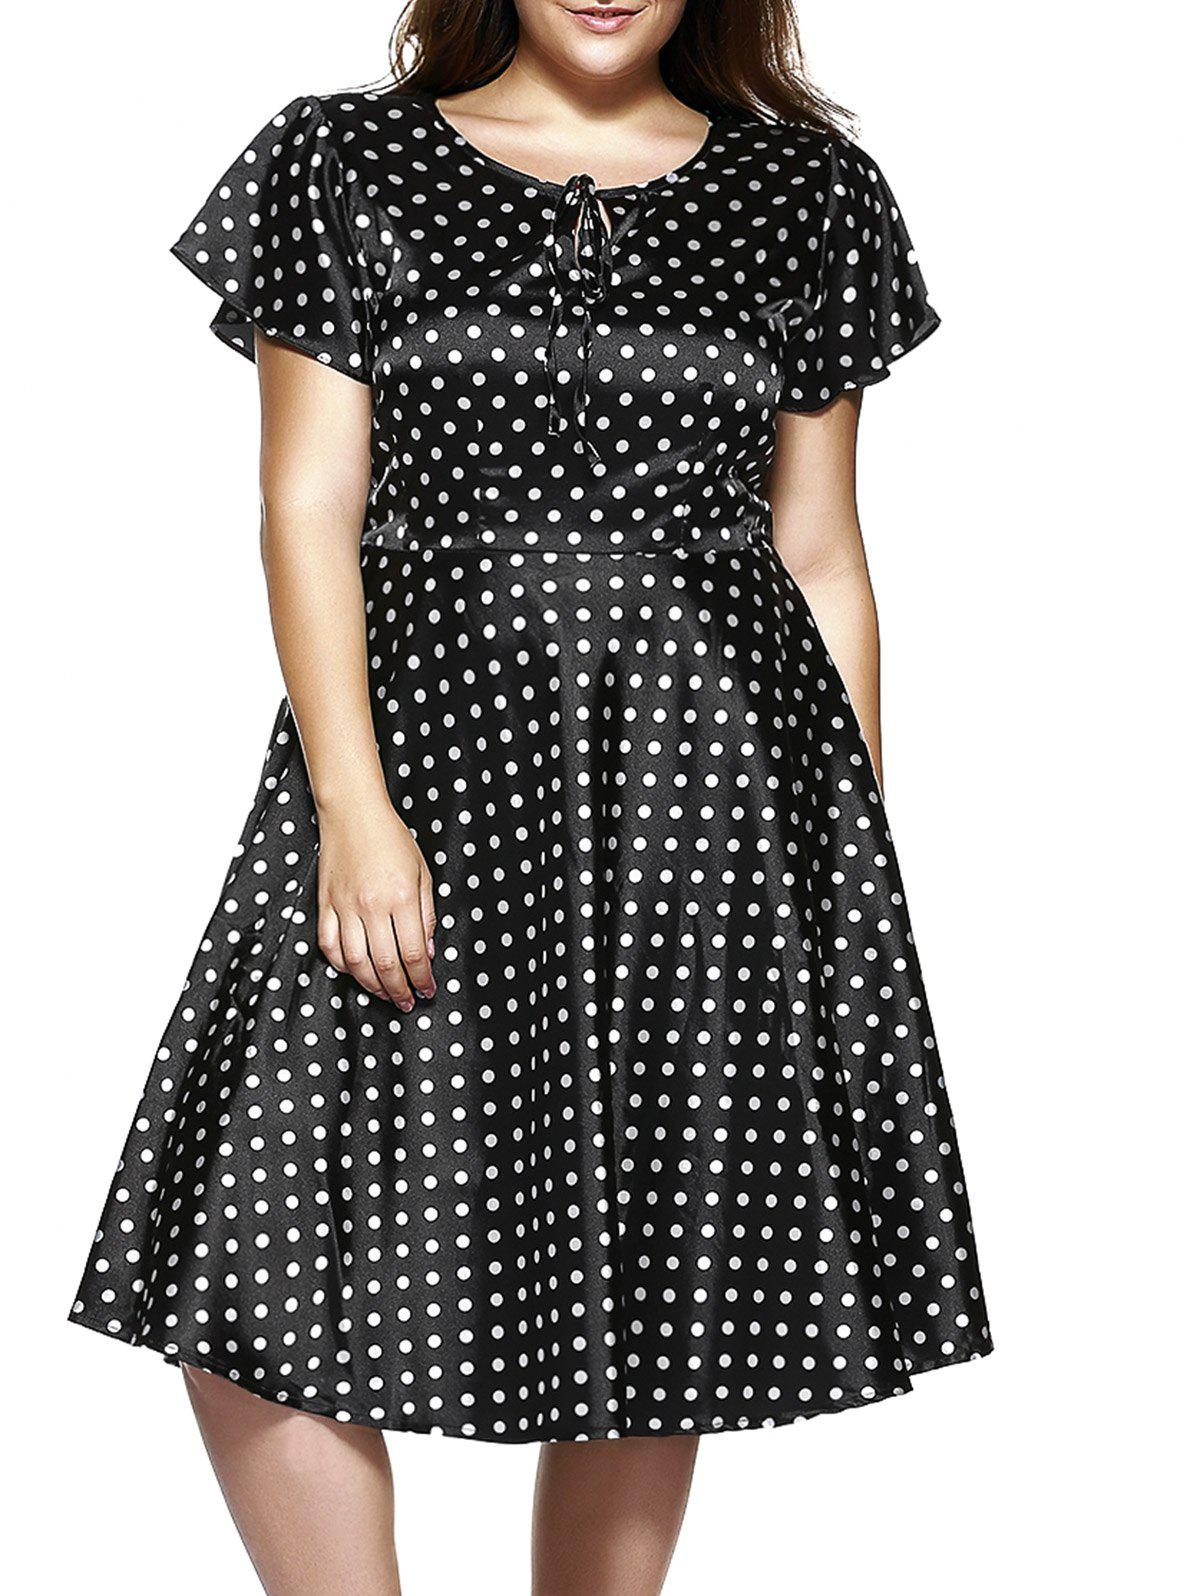 Plus Size Short Sleeve Polka Dot Midi Dress - BLACK 9XL